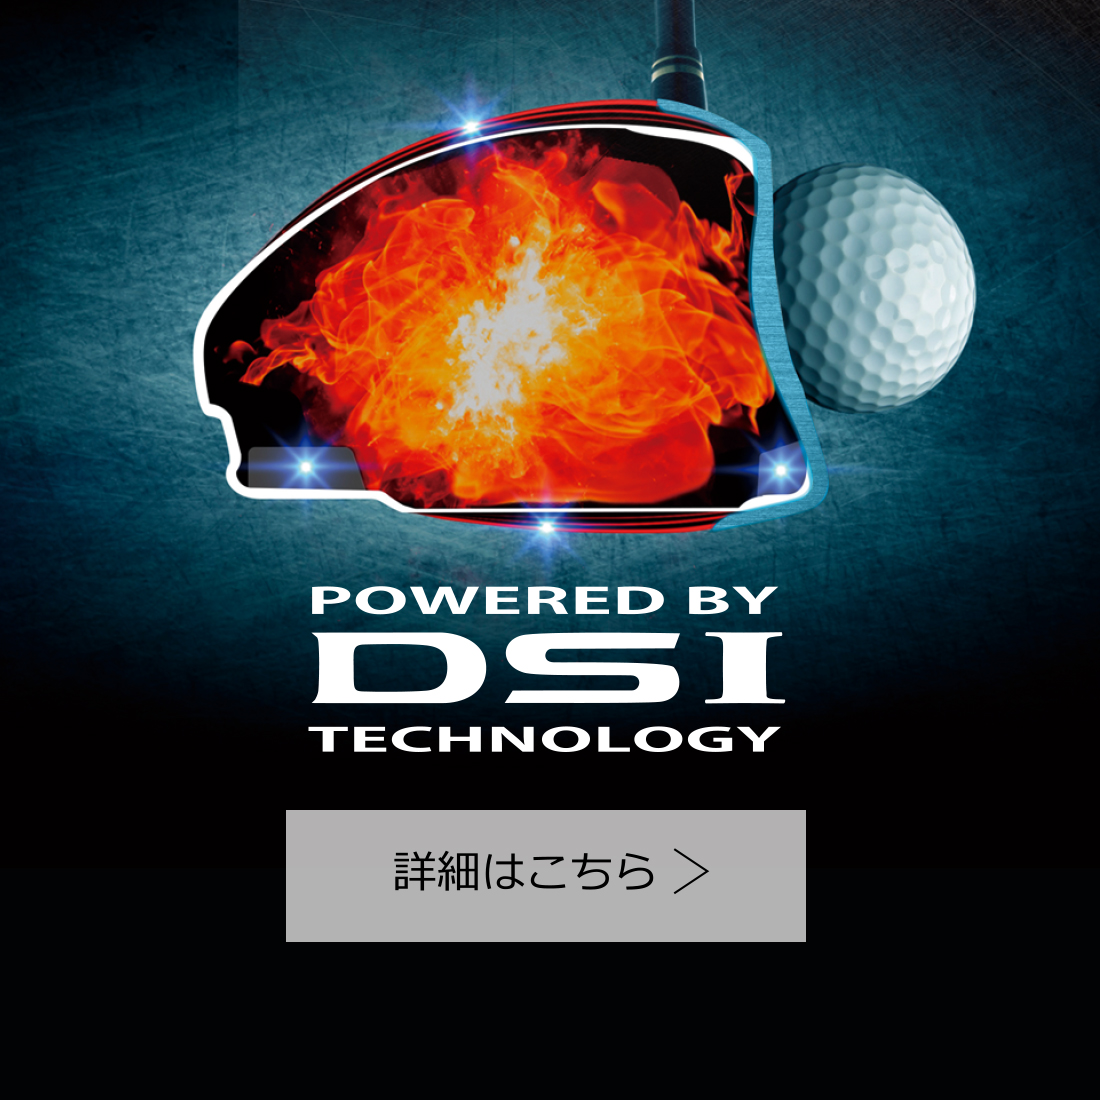 POWERED BY TECHNOLOGY Deep & Strong Impact